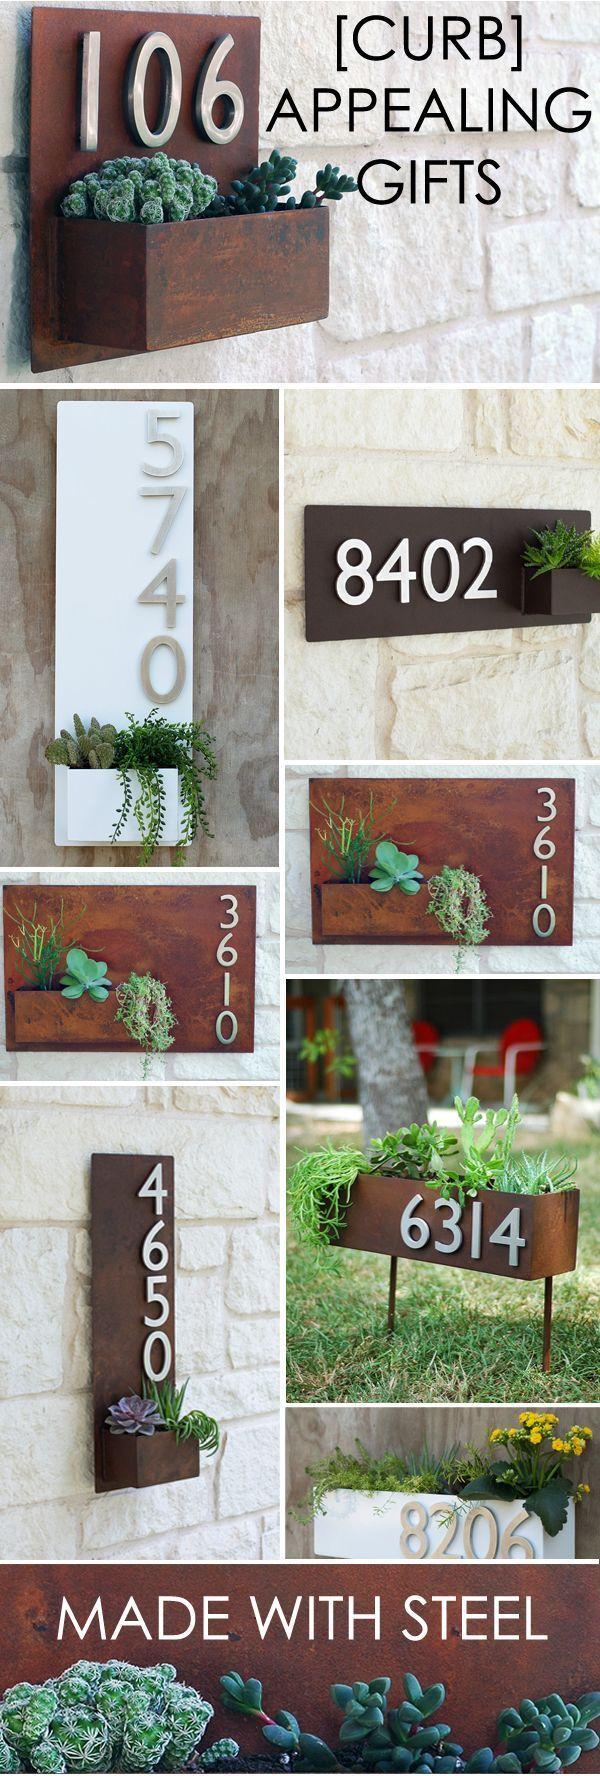 302 Best Images About Front Facade Kerb Appeal On Pinterest: For The Home, Address Plaque And Flower Boxes